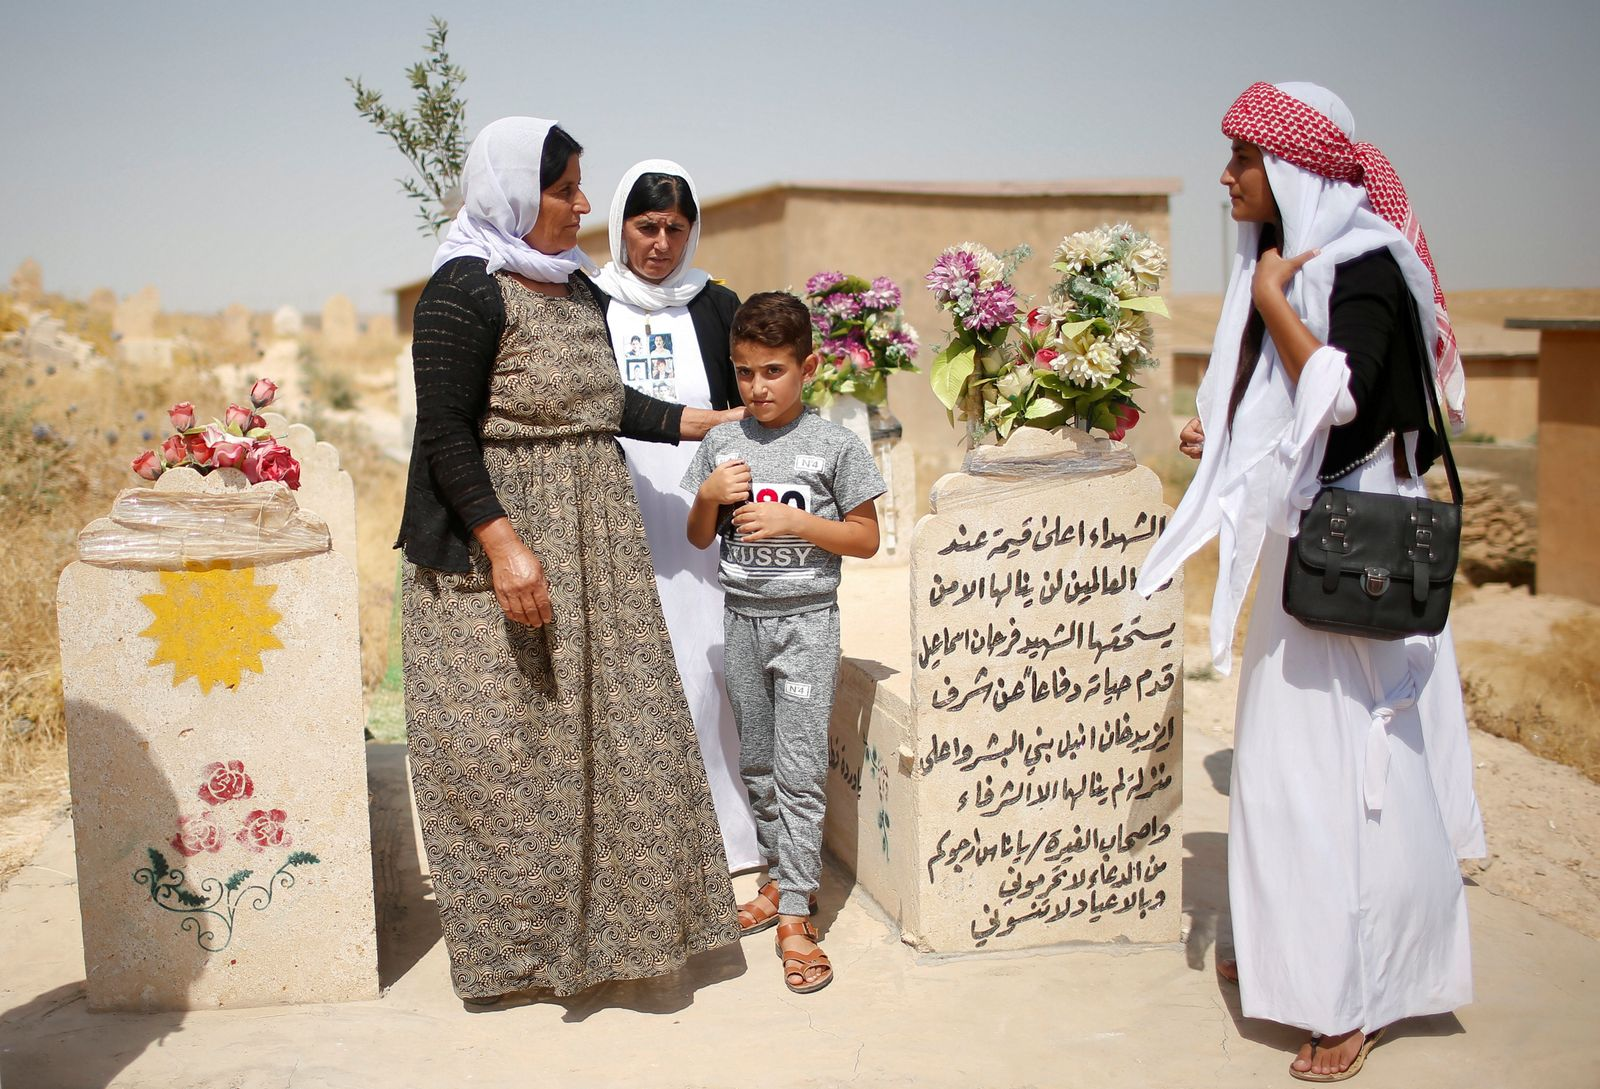 Yazidis visit a cemetery during a commemoration to mark three years since Islamic State launched what the United Nations said was a genocidal campaign against them in Sinjar region